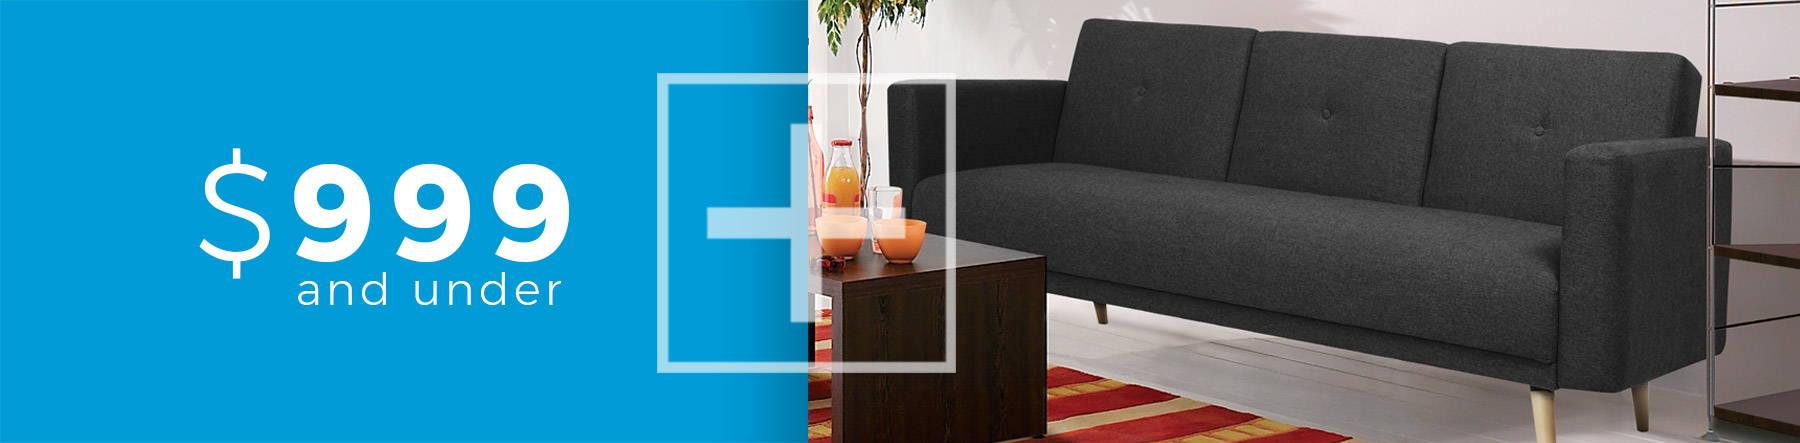 Cheap Sofa Bed Small Space Plus - Toronto